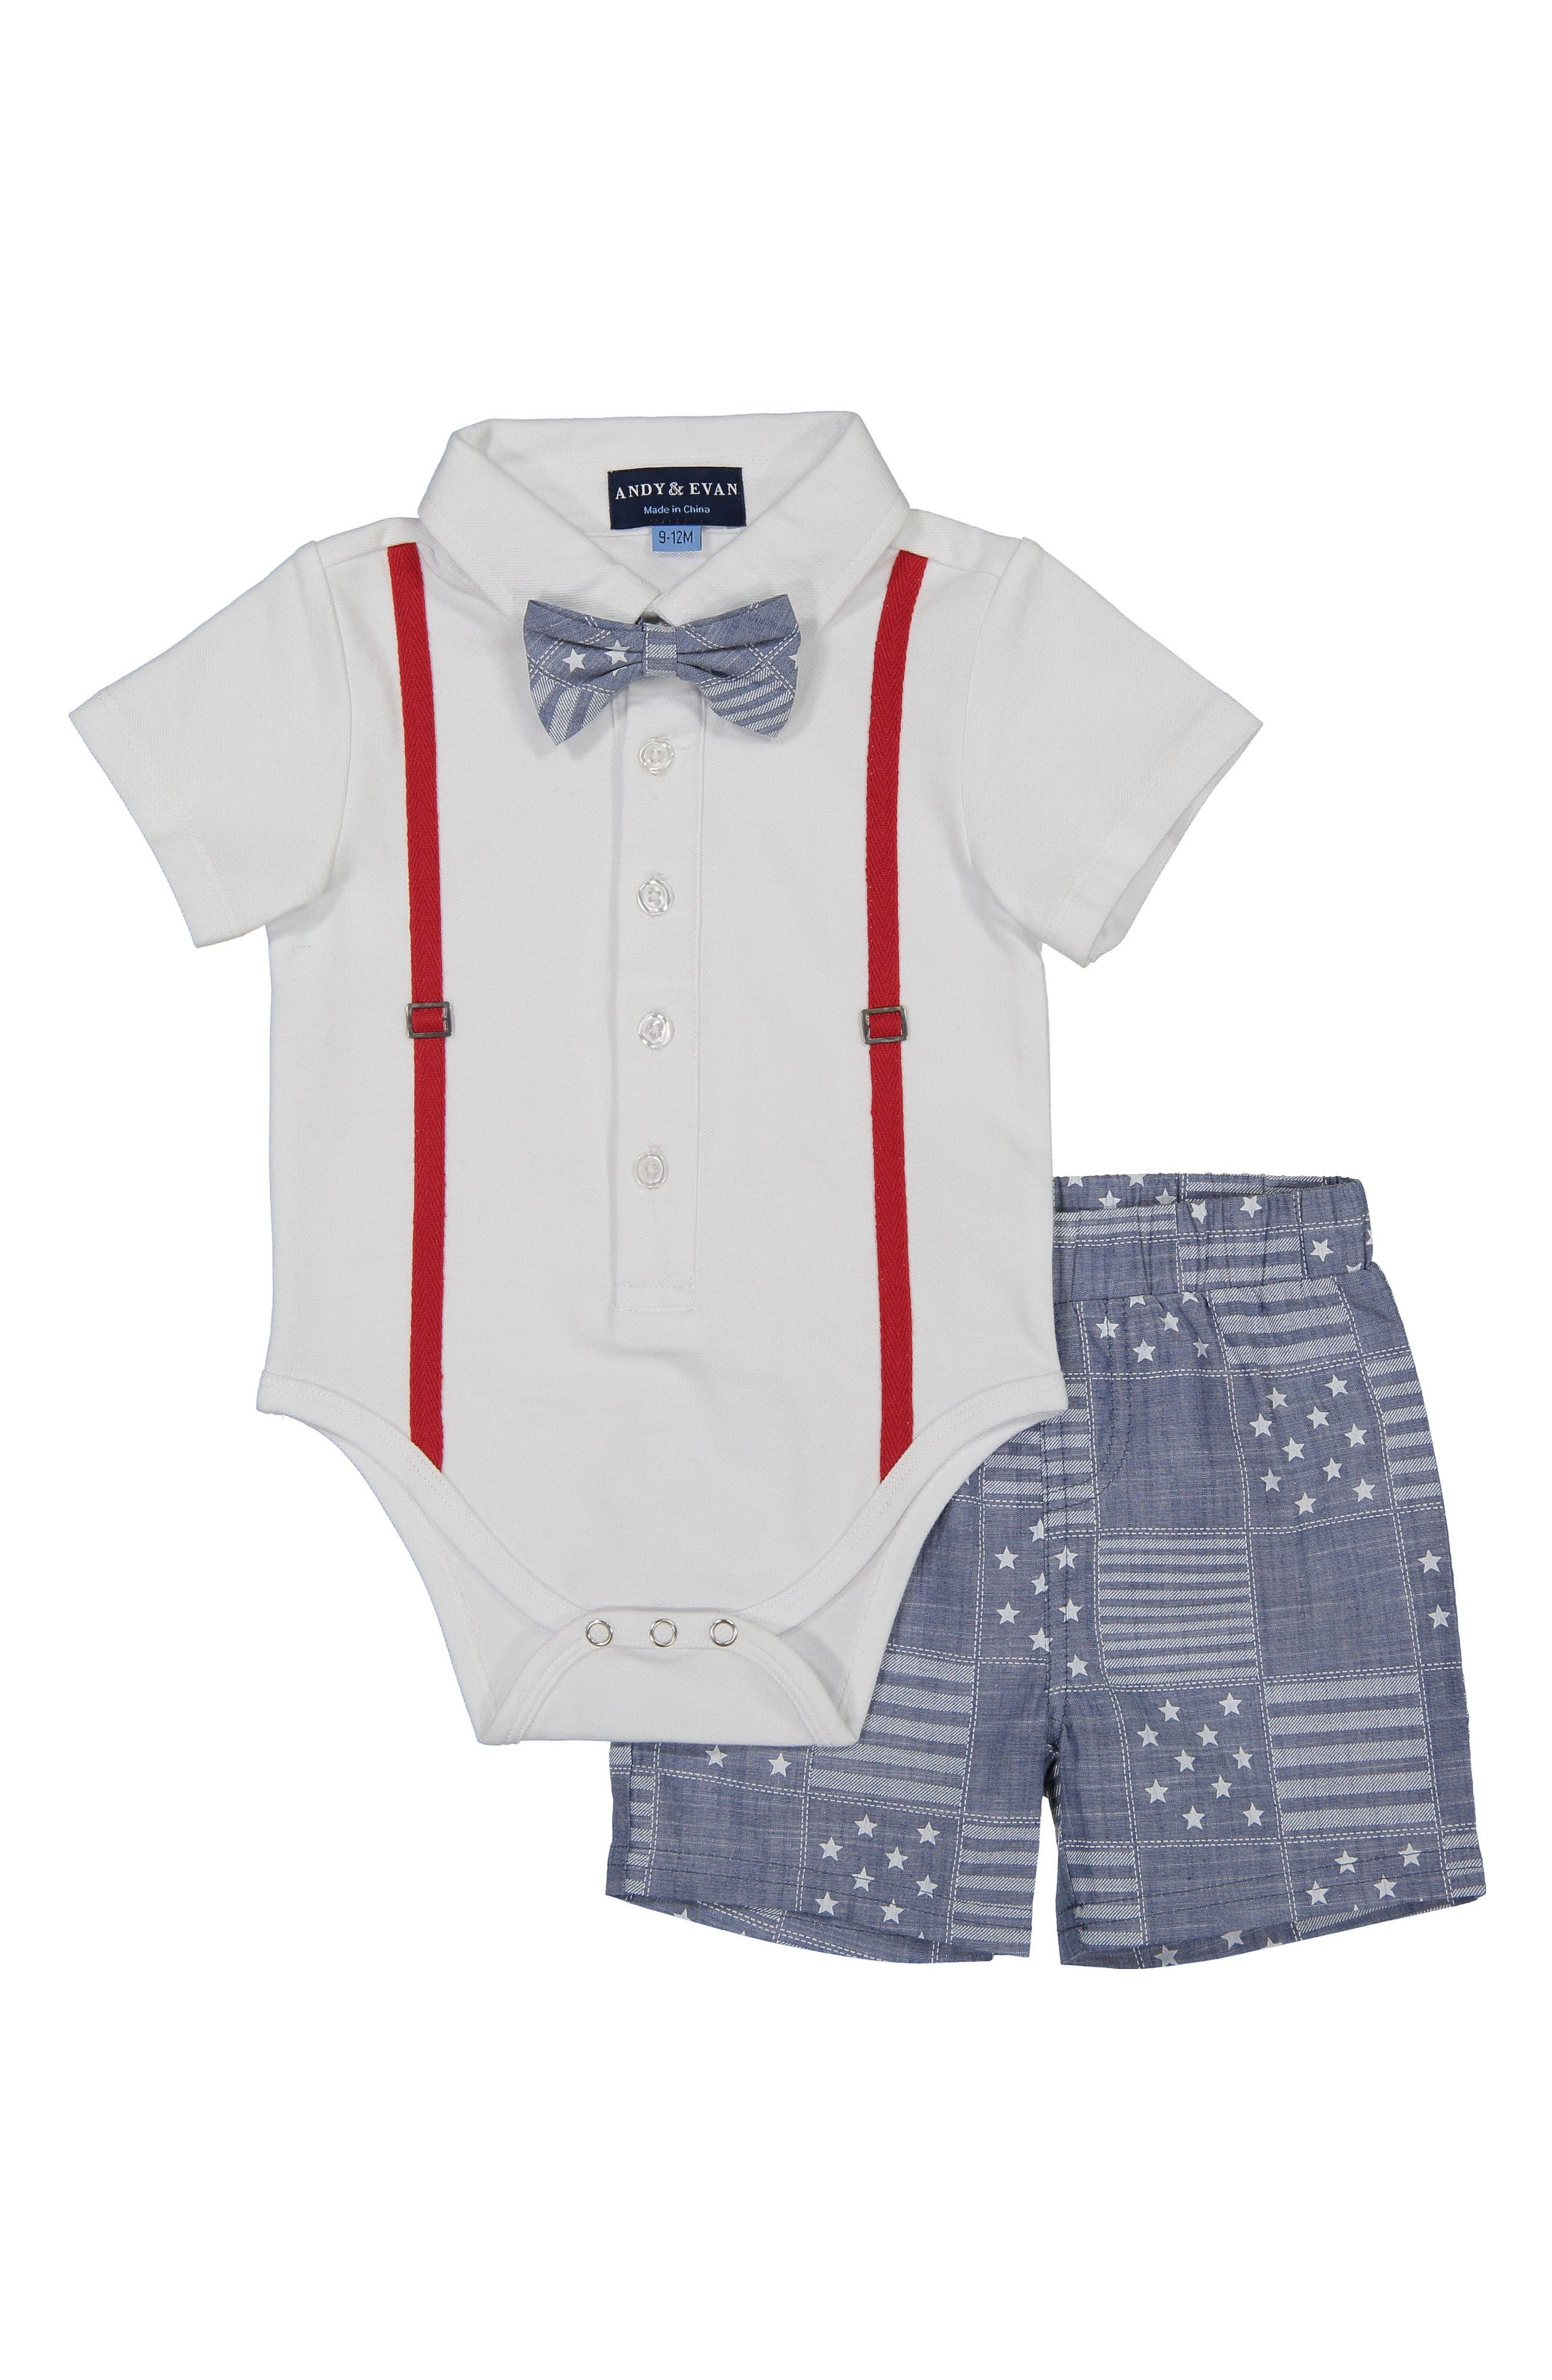 All-American Polo, Bow Tie & Shorts Set,                         Main,                         color, White